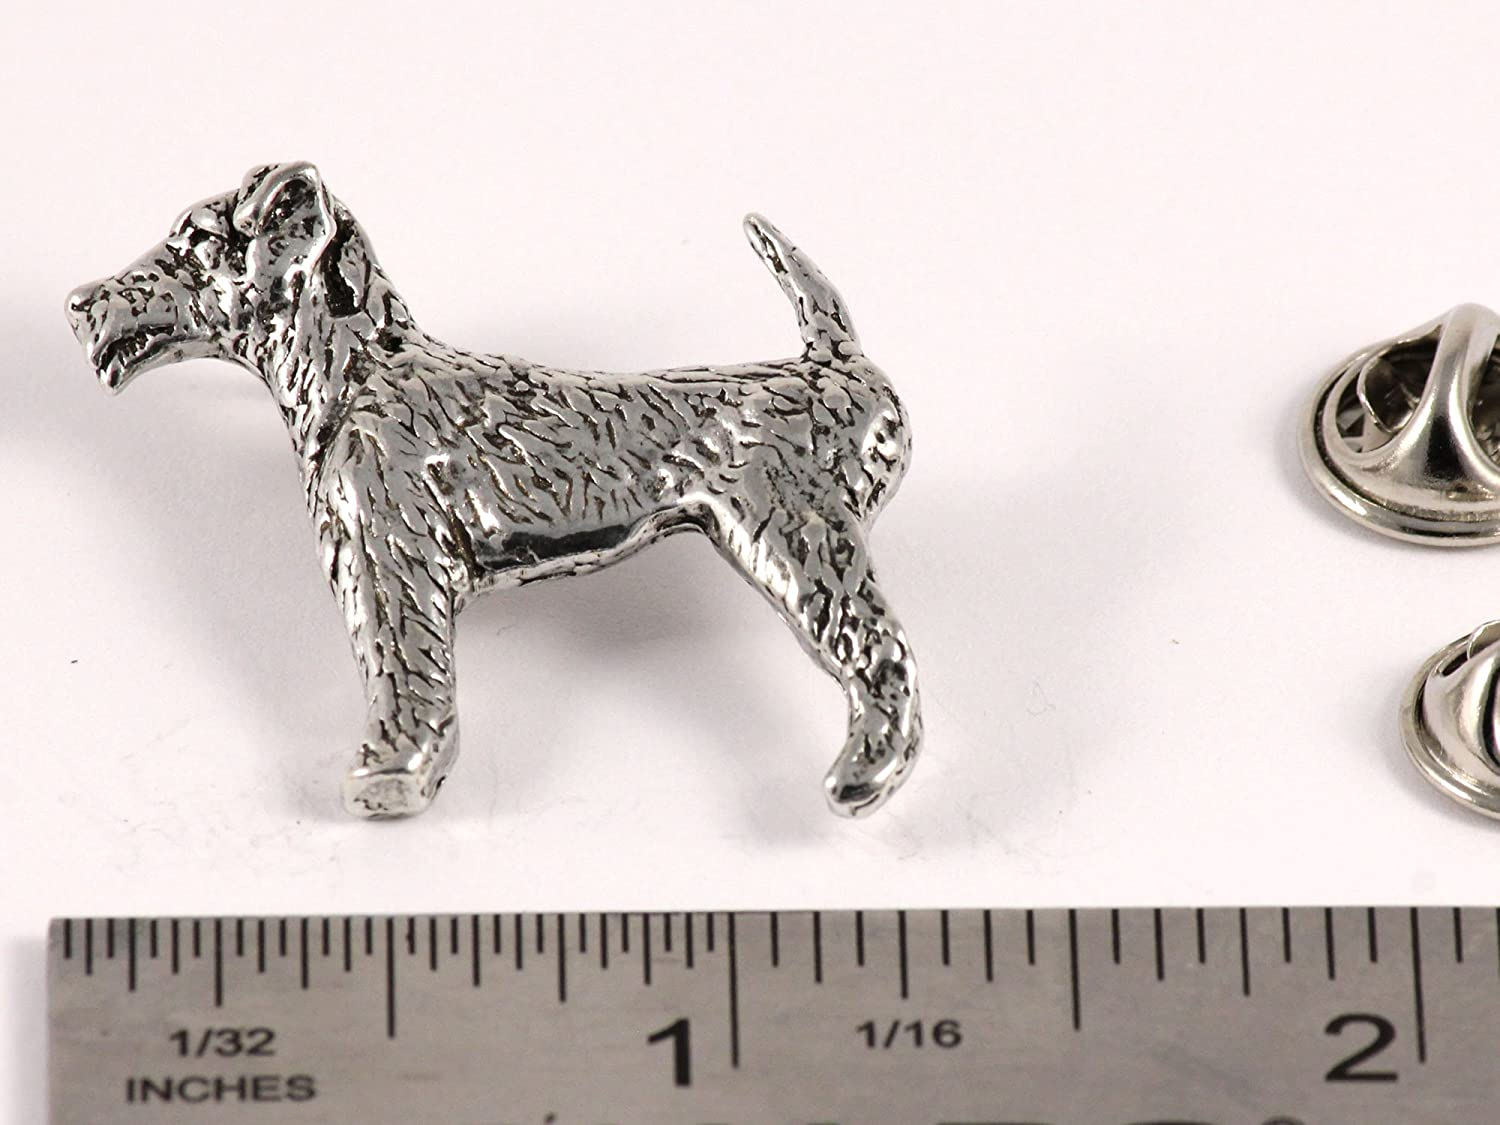 Long Haired Chihuahua Dog Pewter Lapel Pin Jewelry Brooch D350F